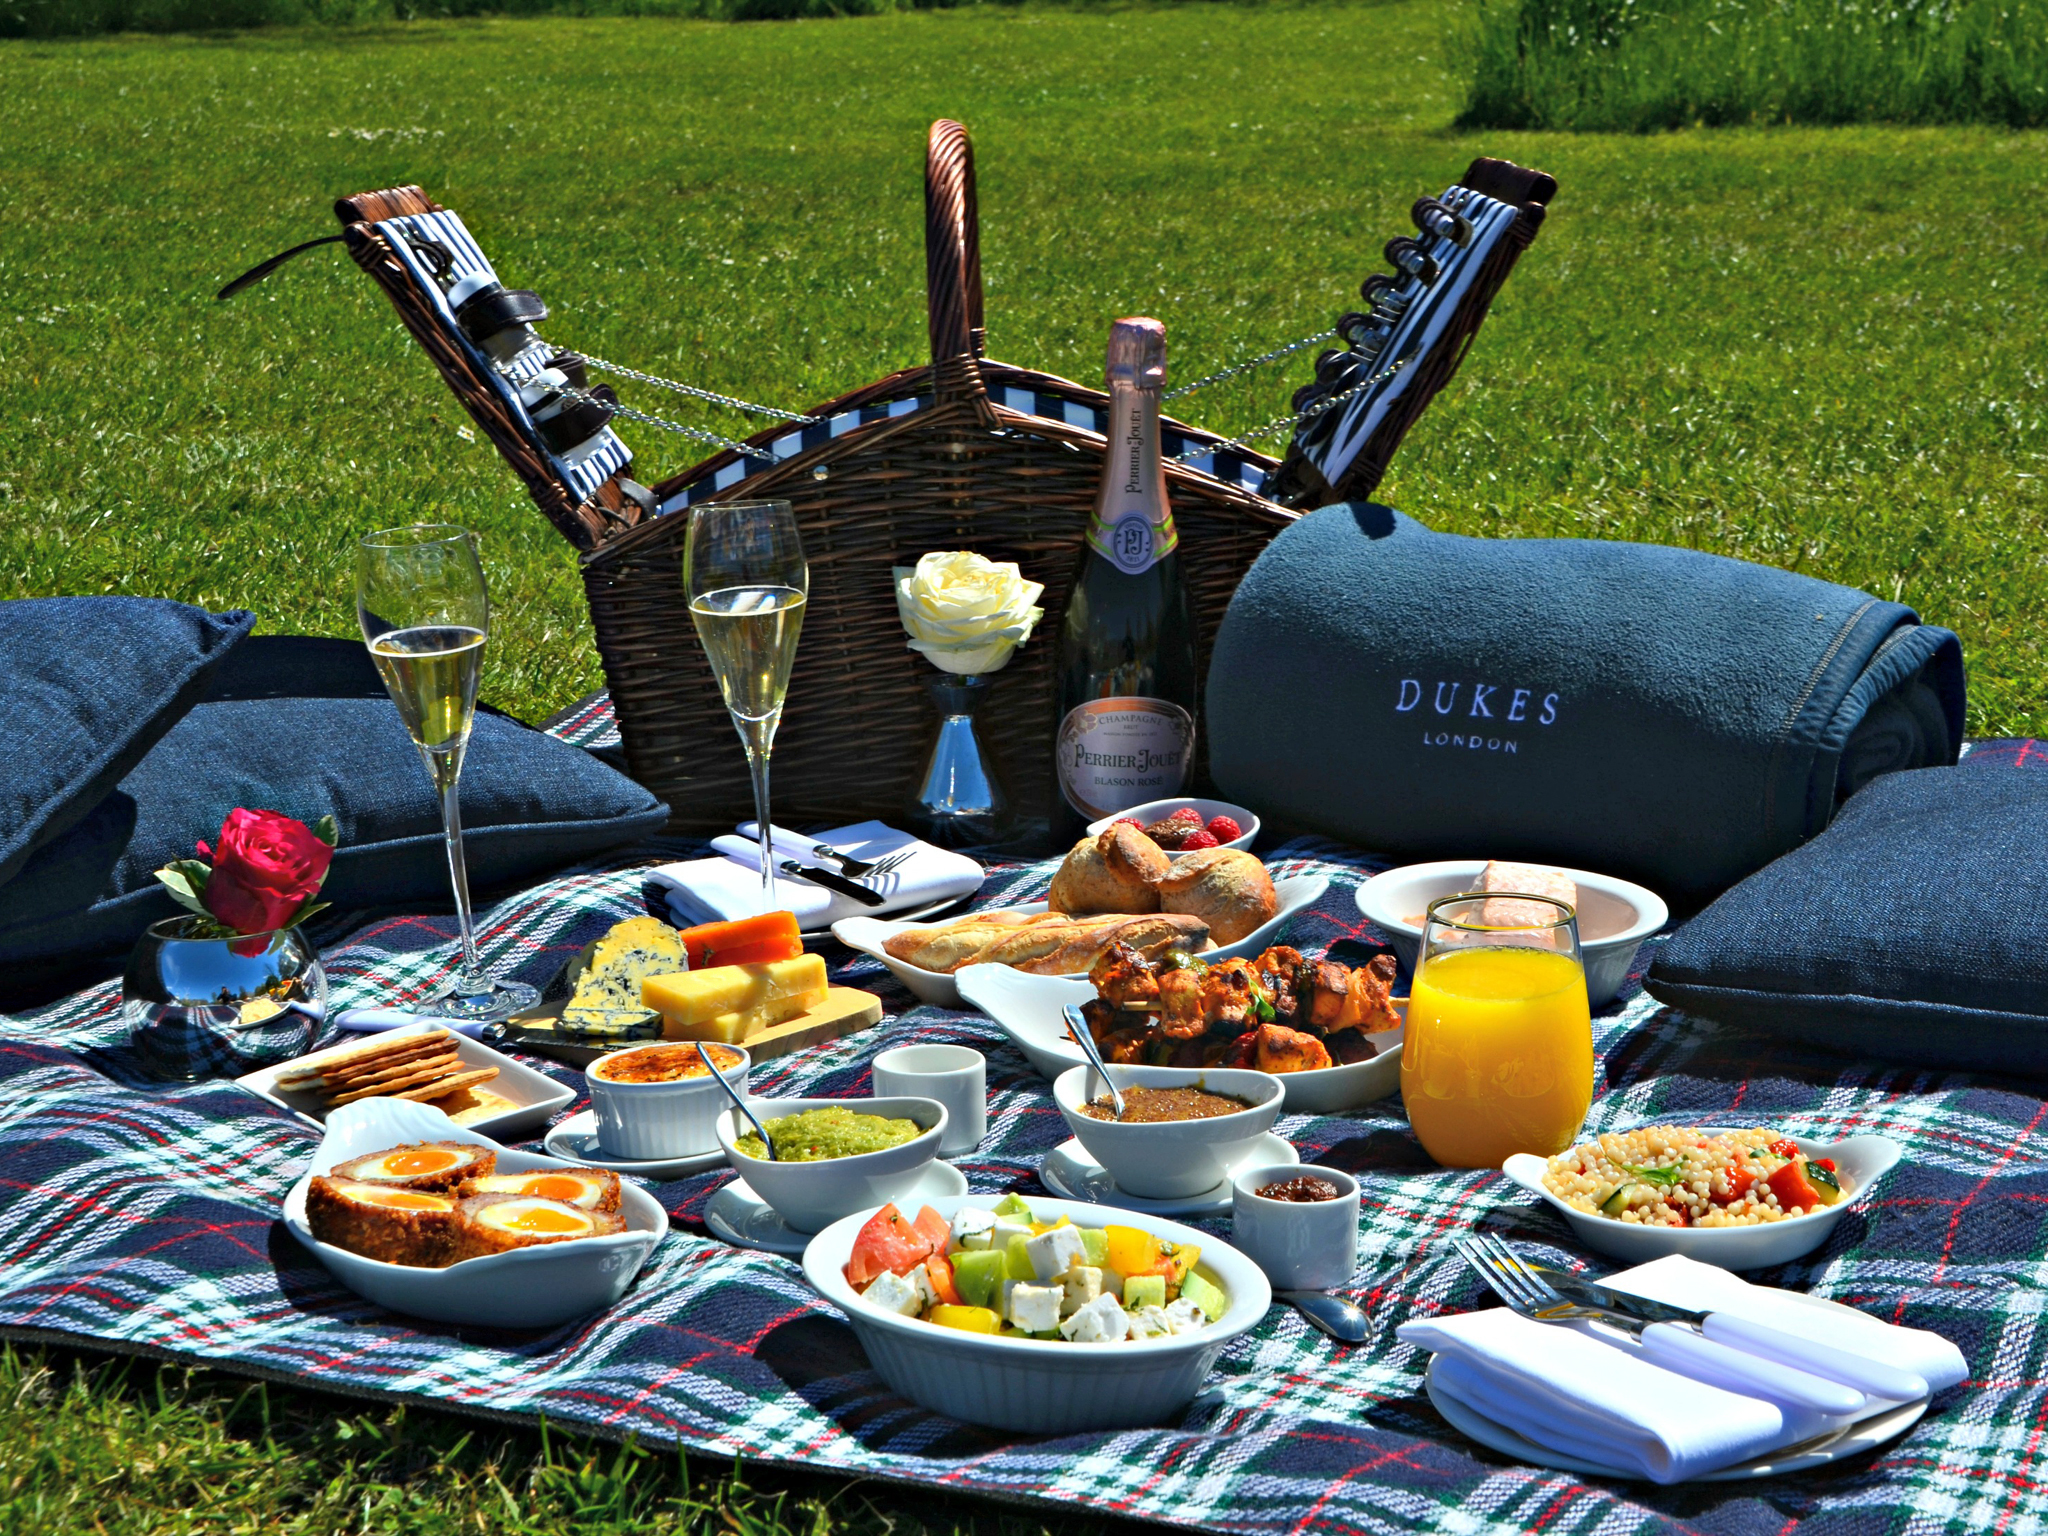 the best picnic hampers in london, dukes hotel